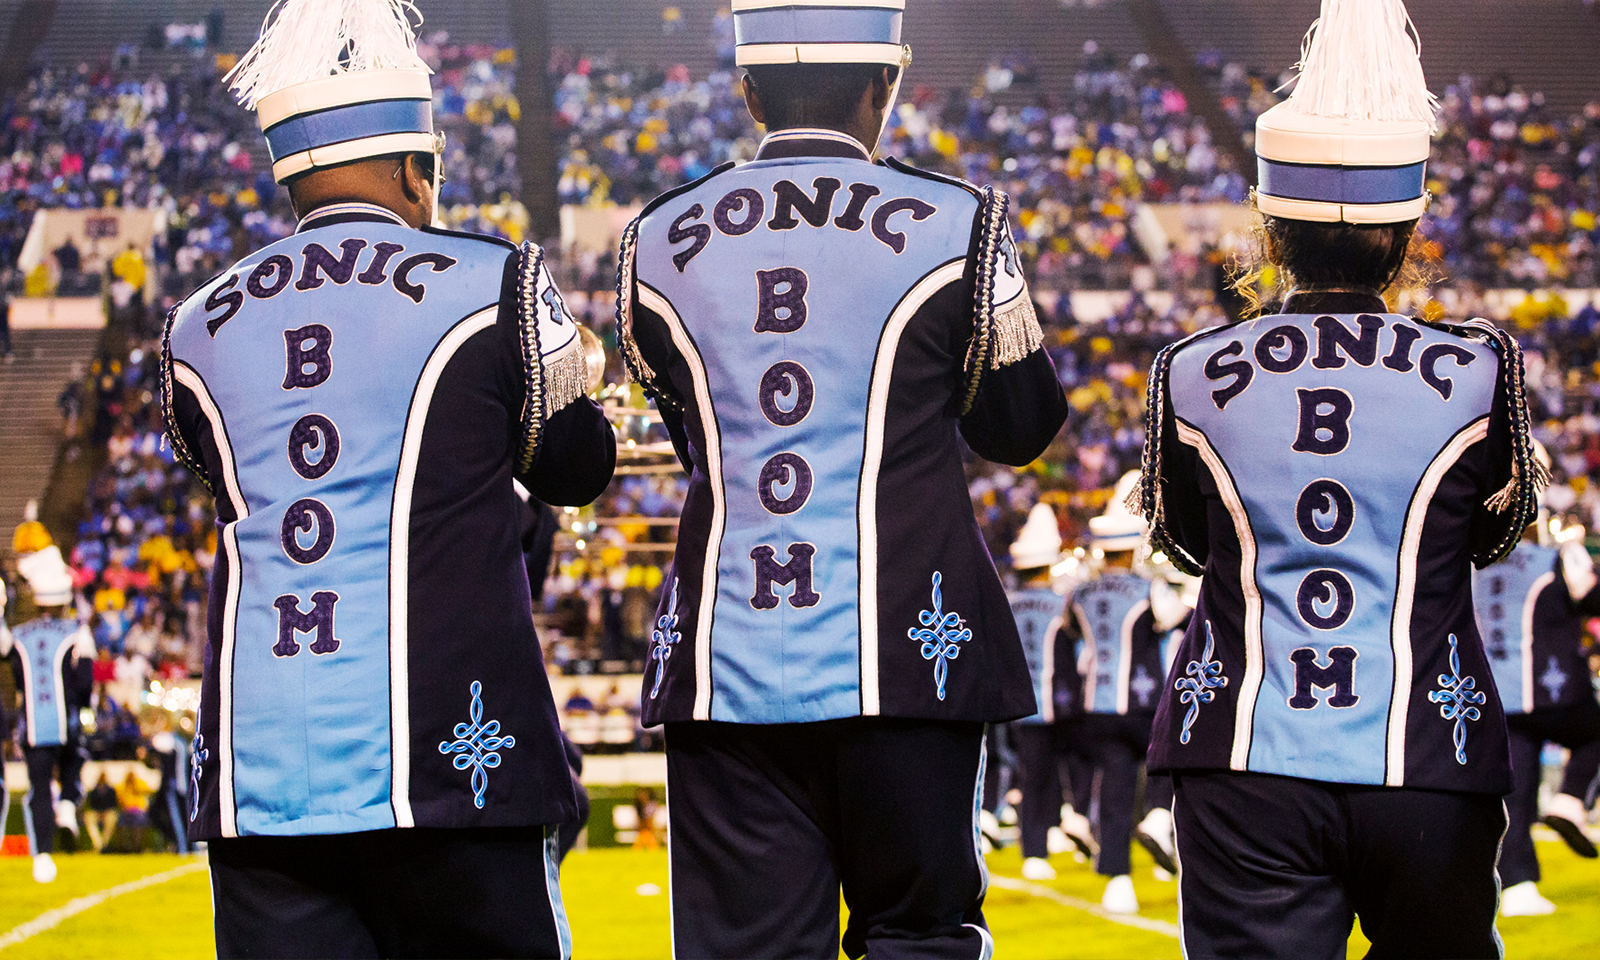 Sonic Boom's online band camp has 900 students - HBCU Gameday